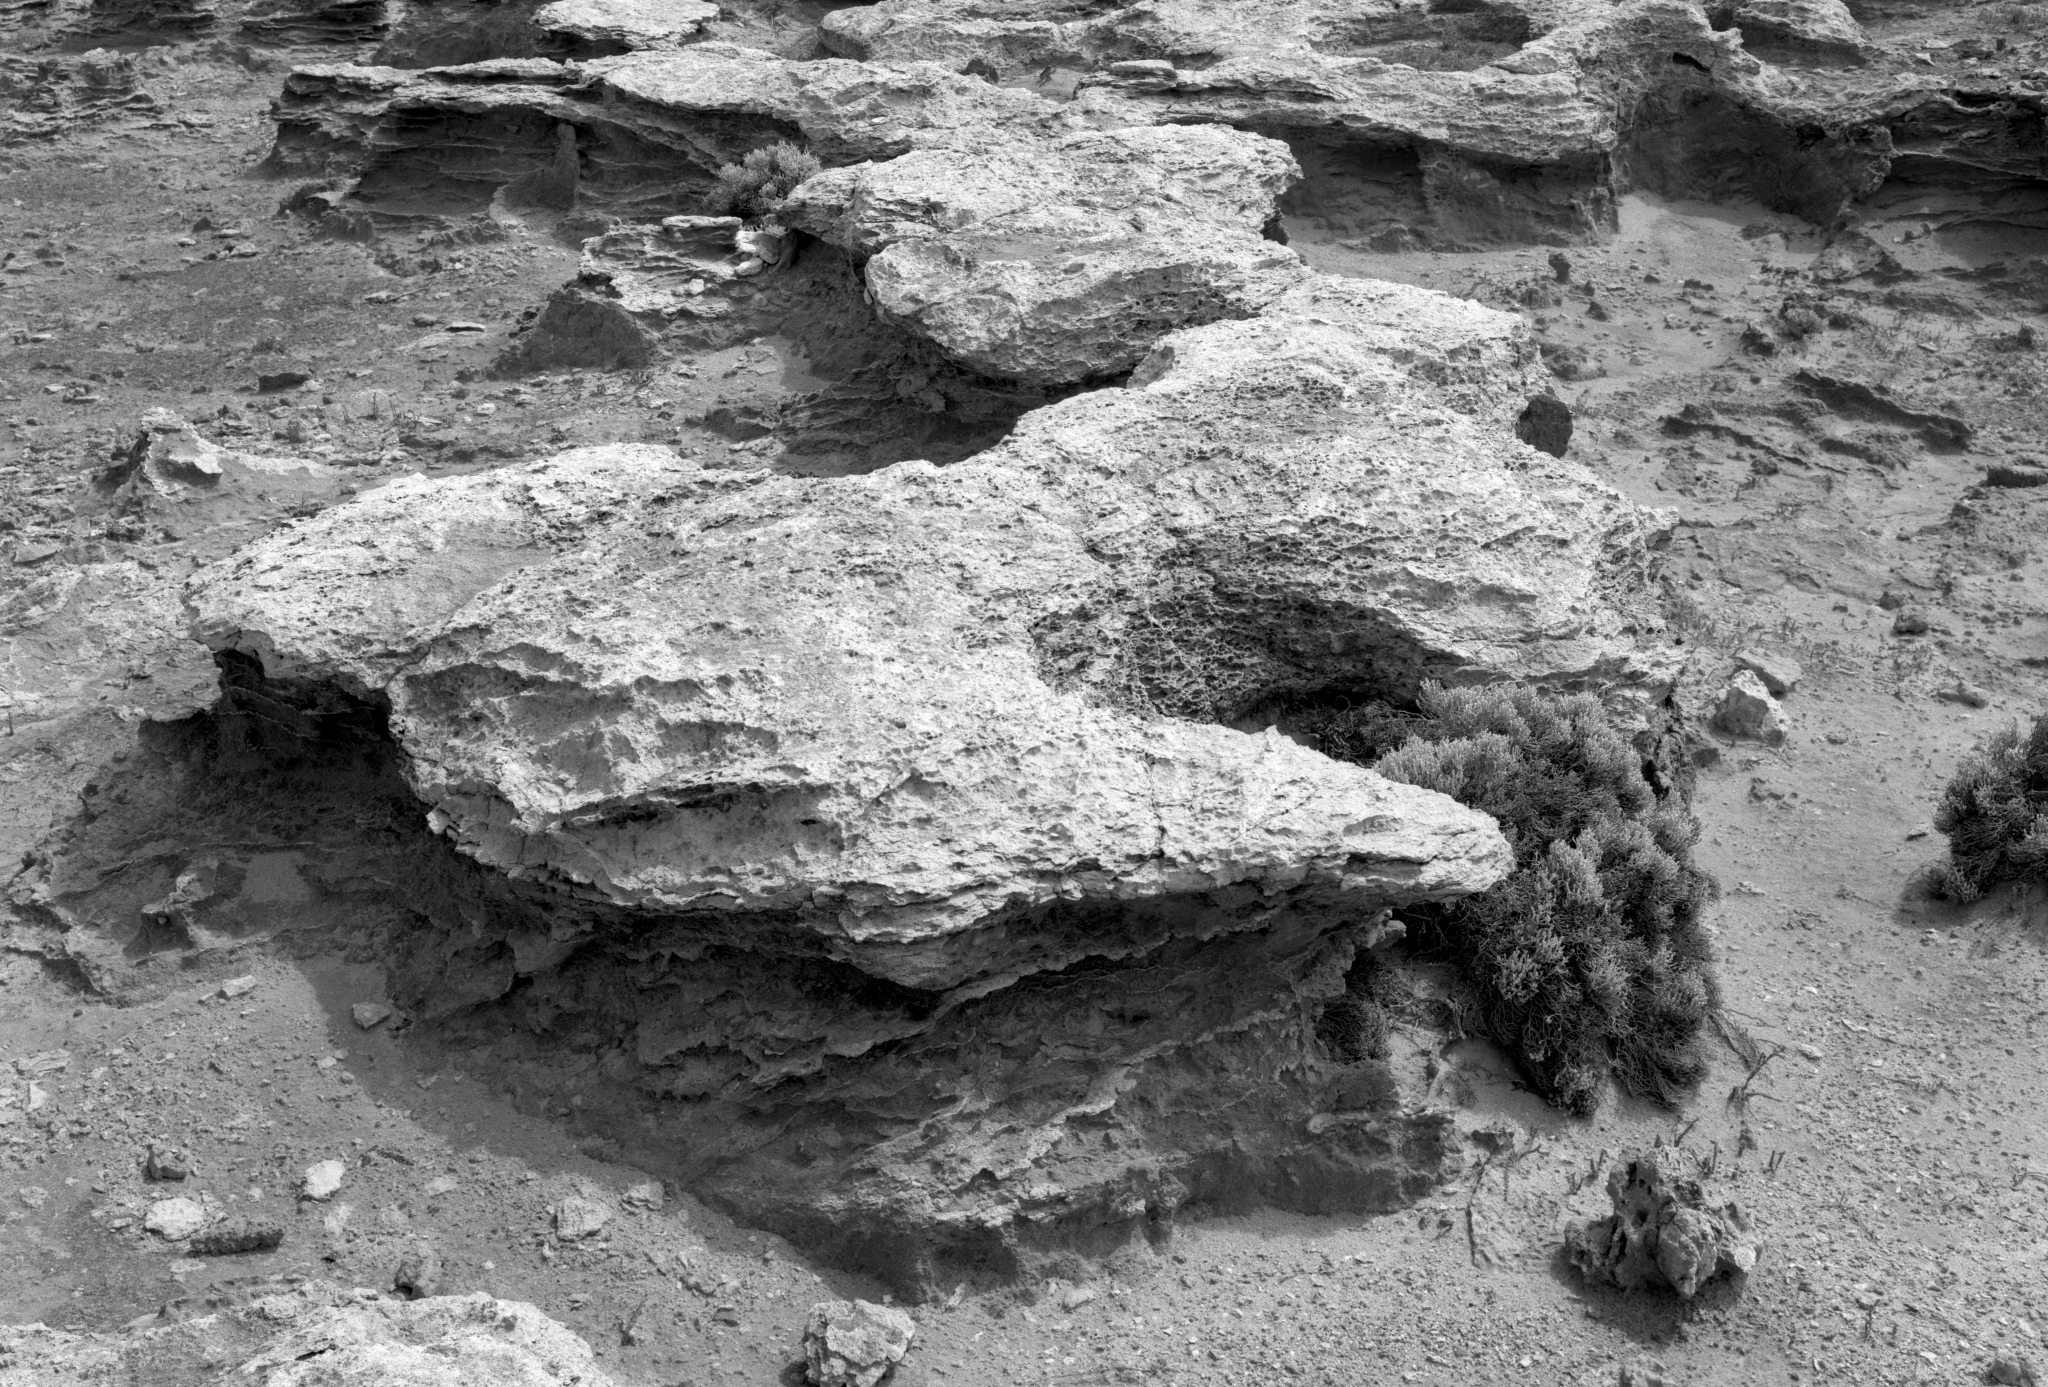 180011_Petrified_Forest_Portland_150_Ilford_FP4+_No_Filter_F22_1-30_Rear_Tilt_007_Web.jpg